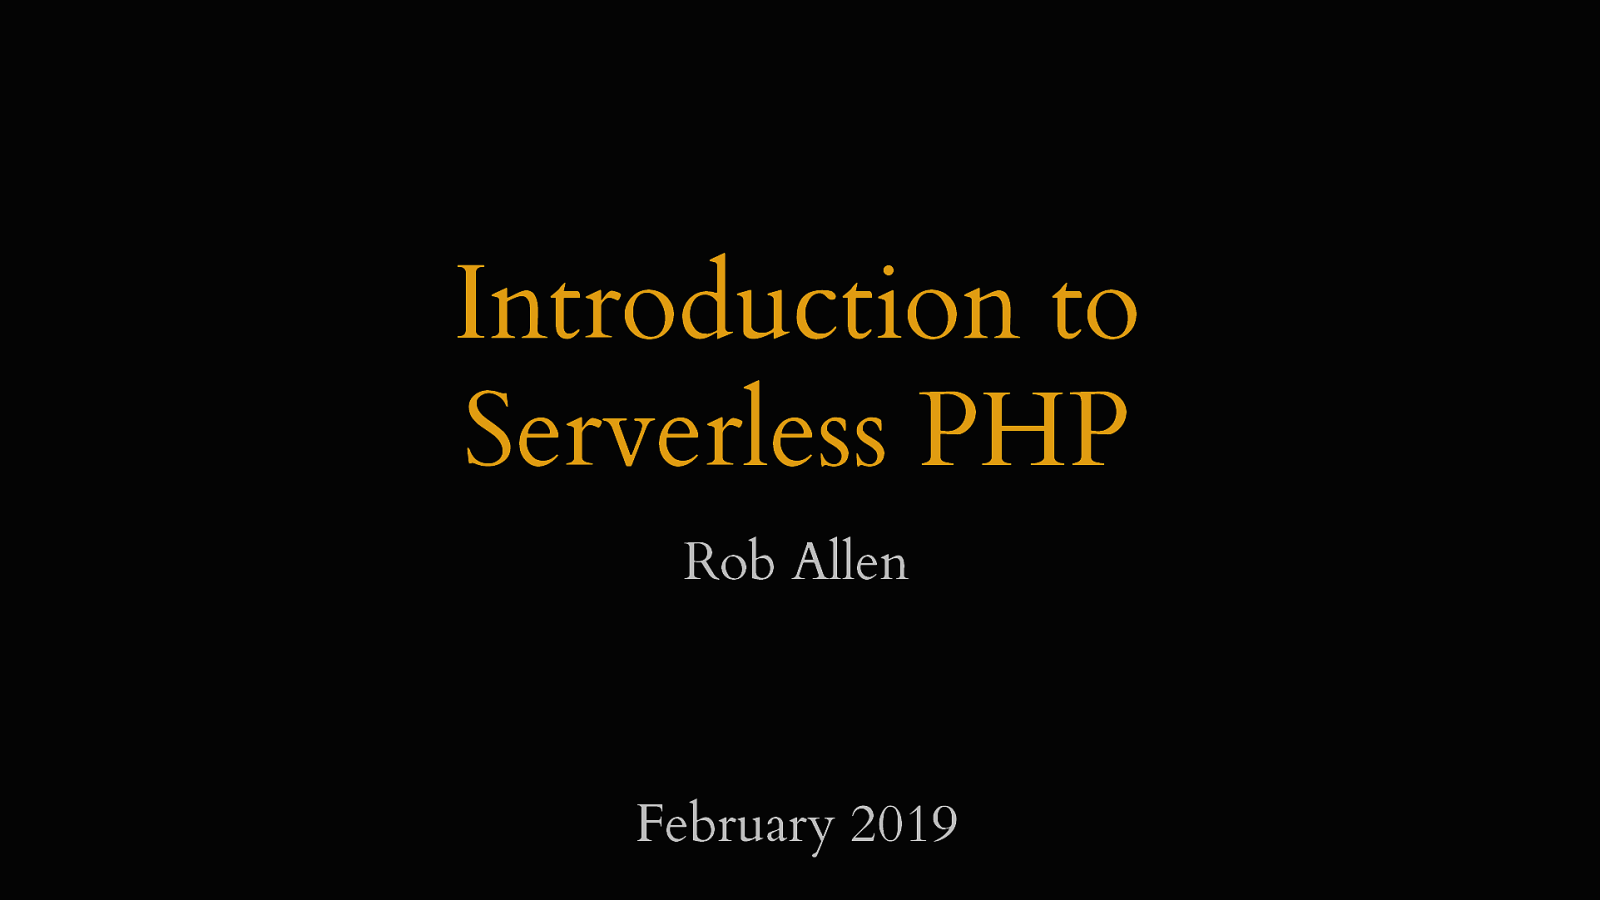 Introduction to Serverless PHP by Rob Allen